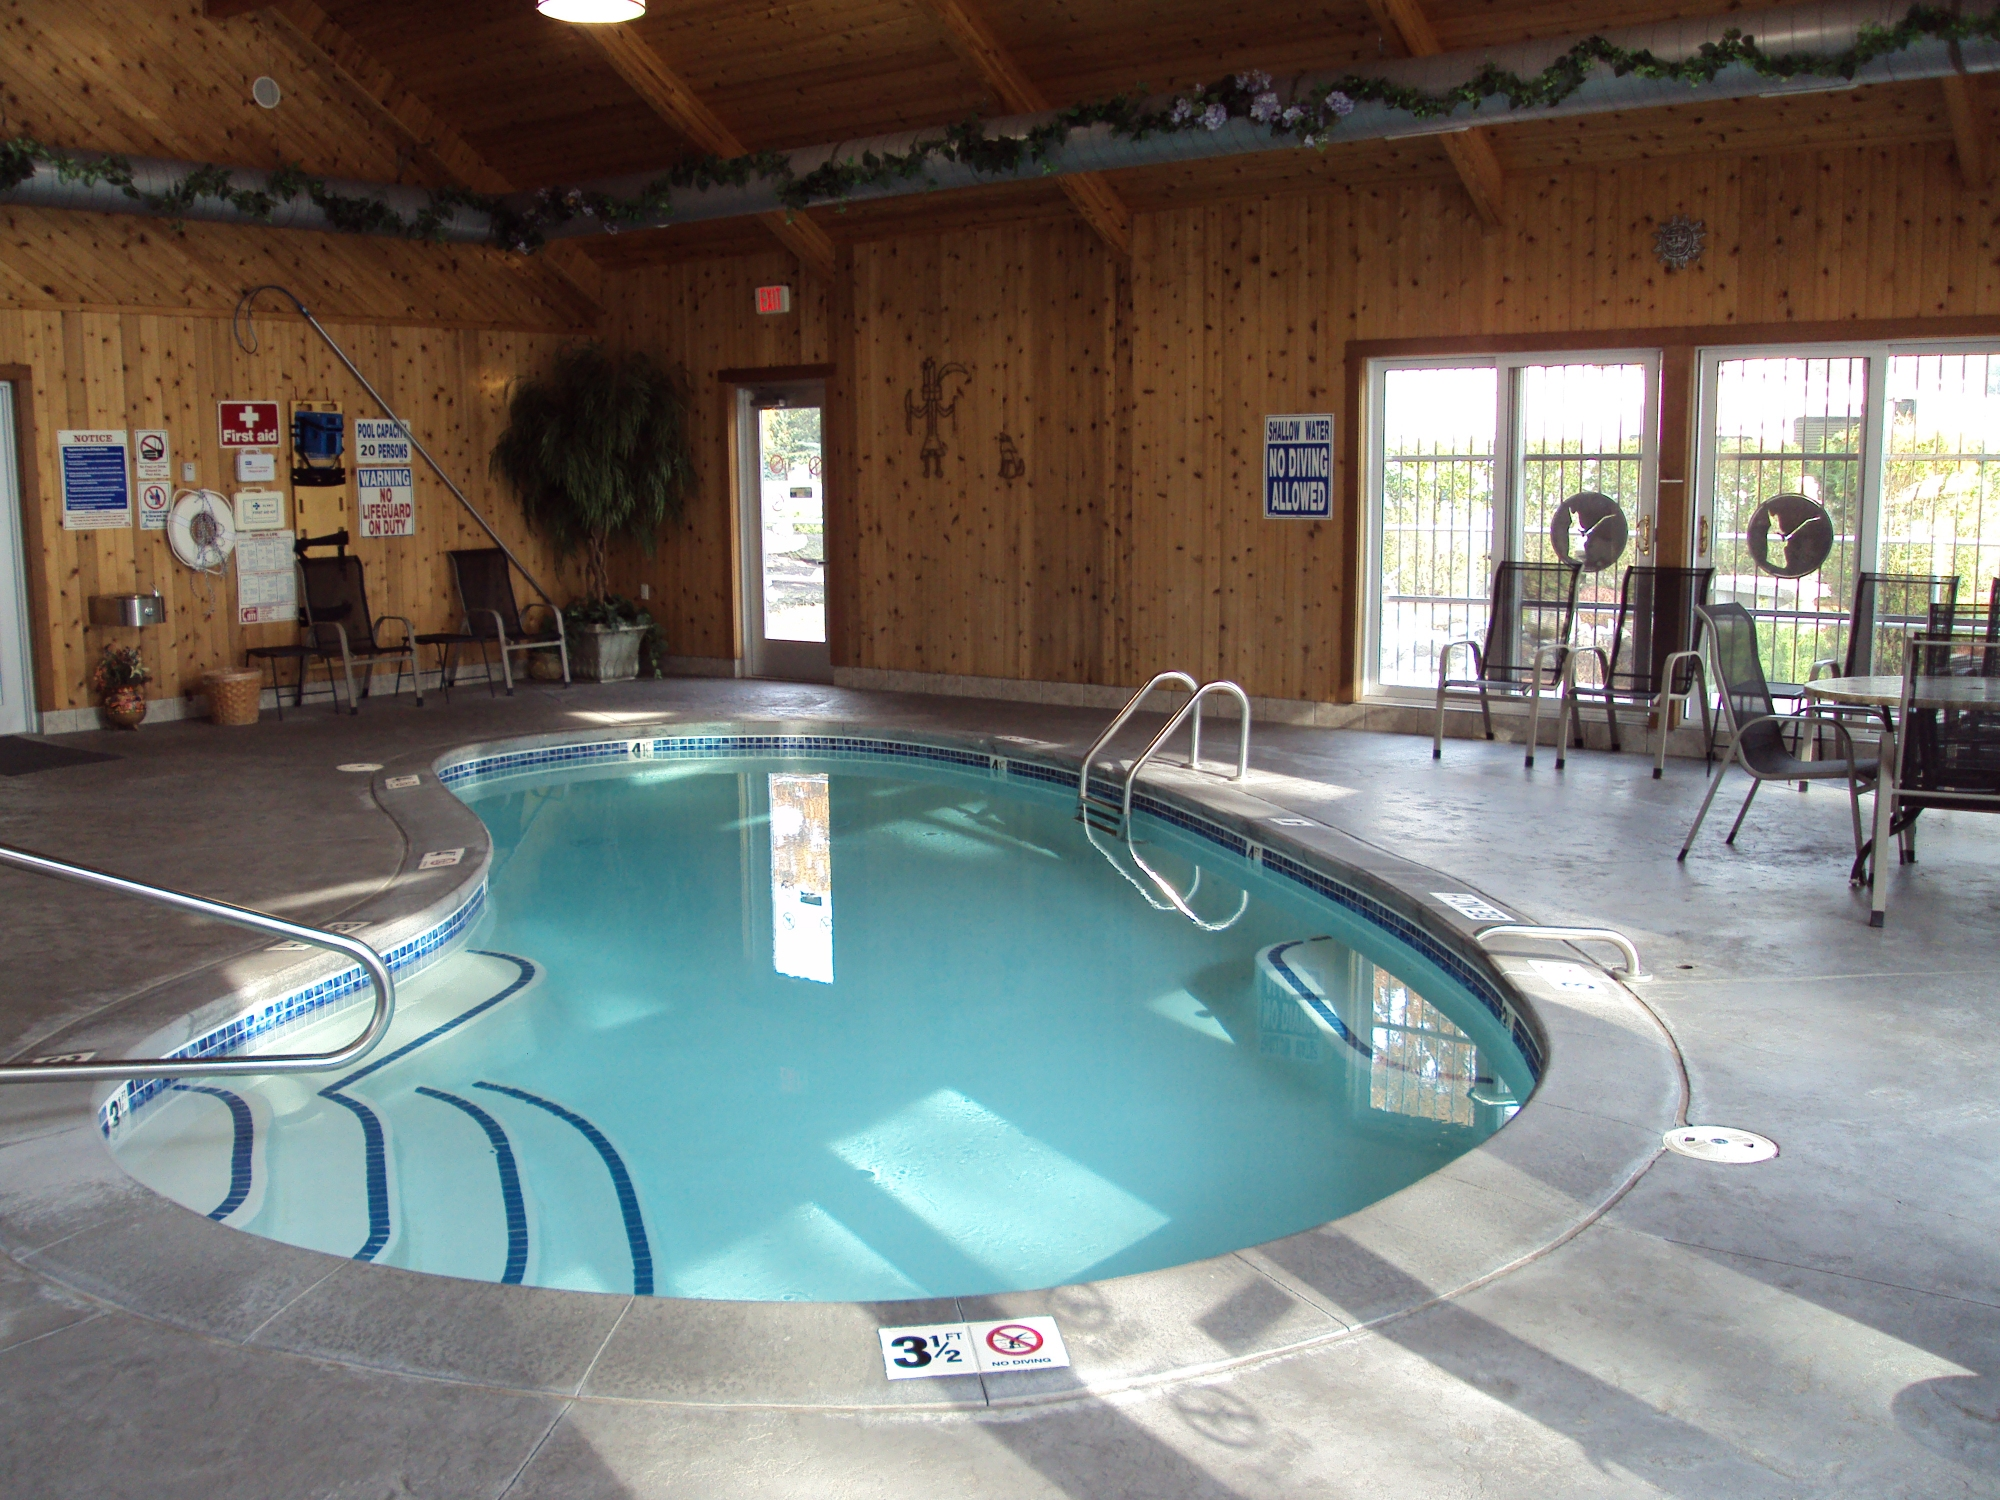 Exceptional The Indoor Pool And Hot Tub Are Available Daily From 9am To 9pm, For The  Entire Camping Season! So, Make Sure To Pack Swim Suits, Regardless Of The  Expected ...